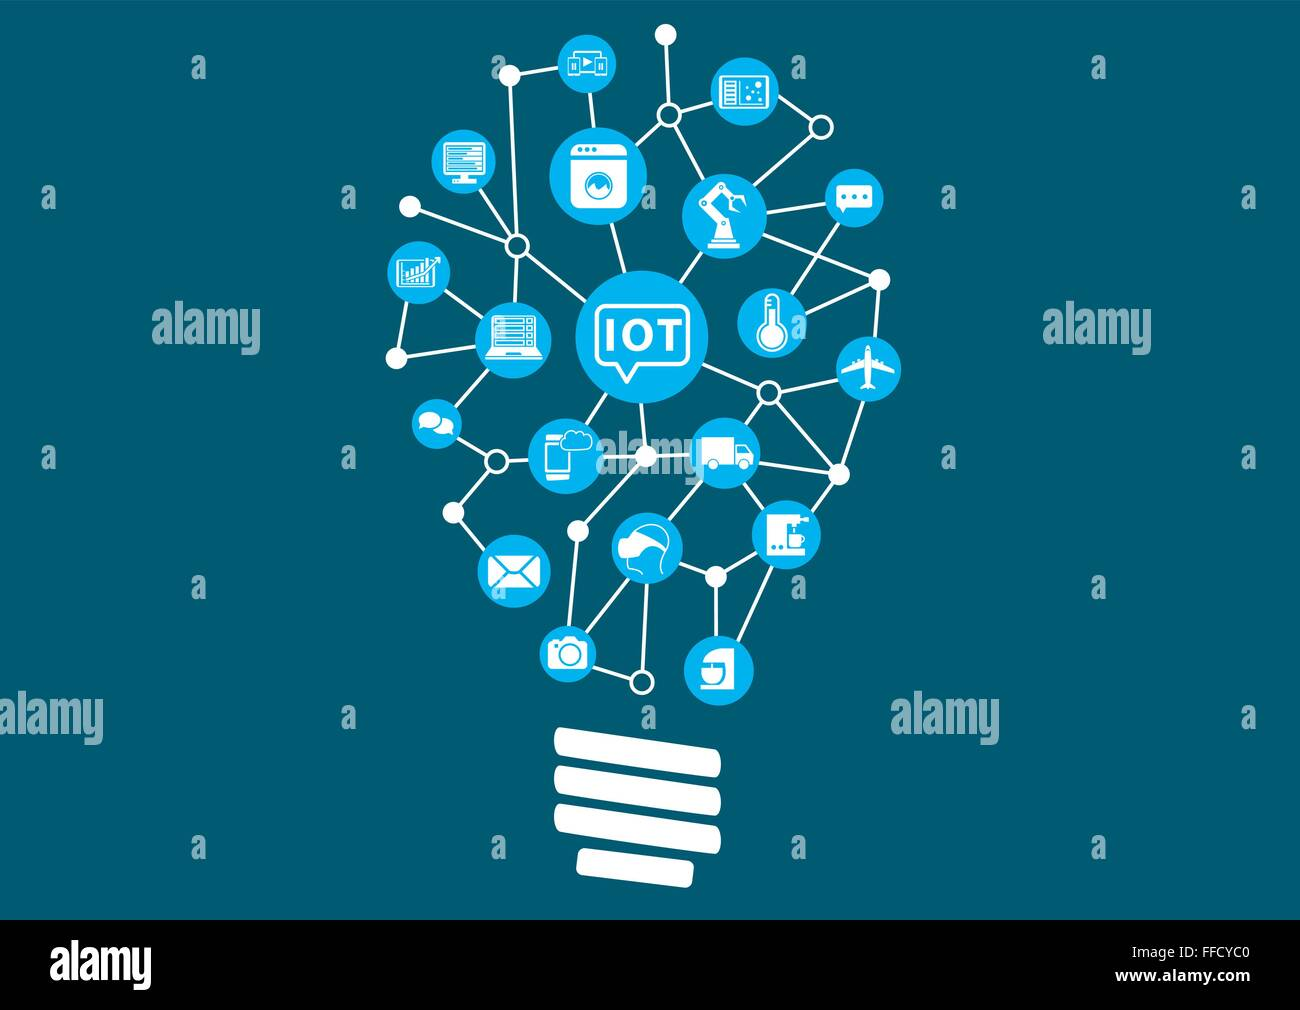 Internet of everything (IoT) concept. Light bulb to represent ...